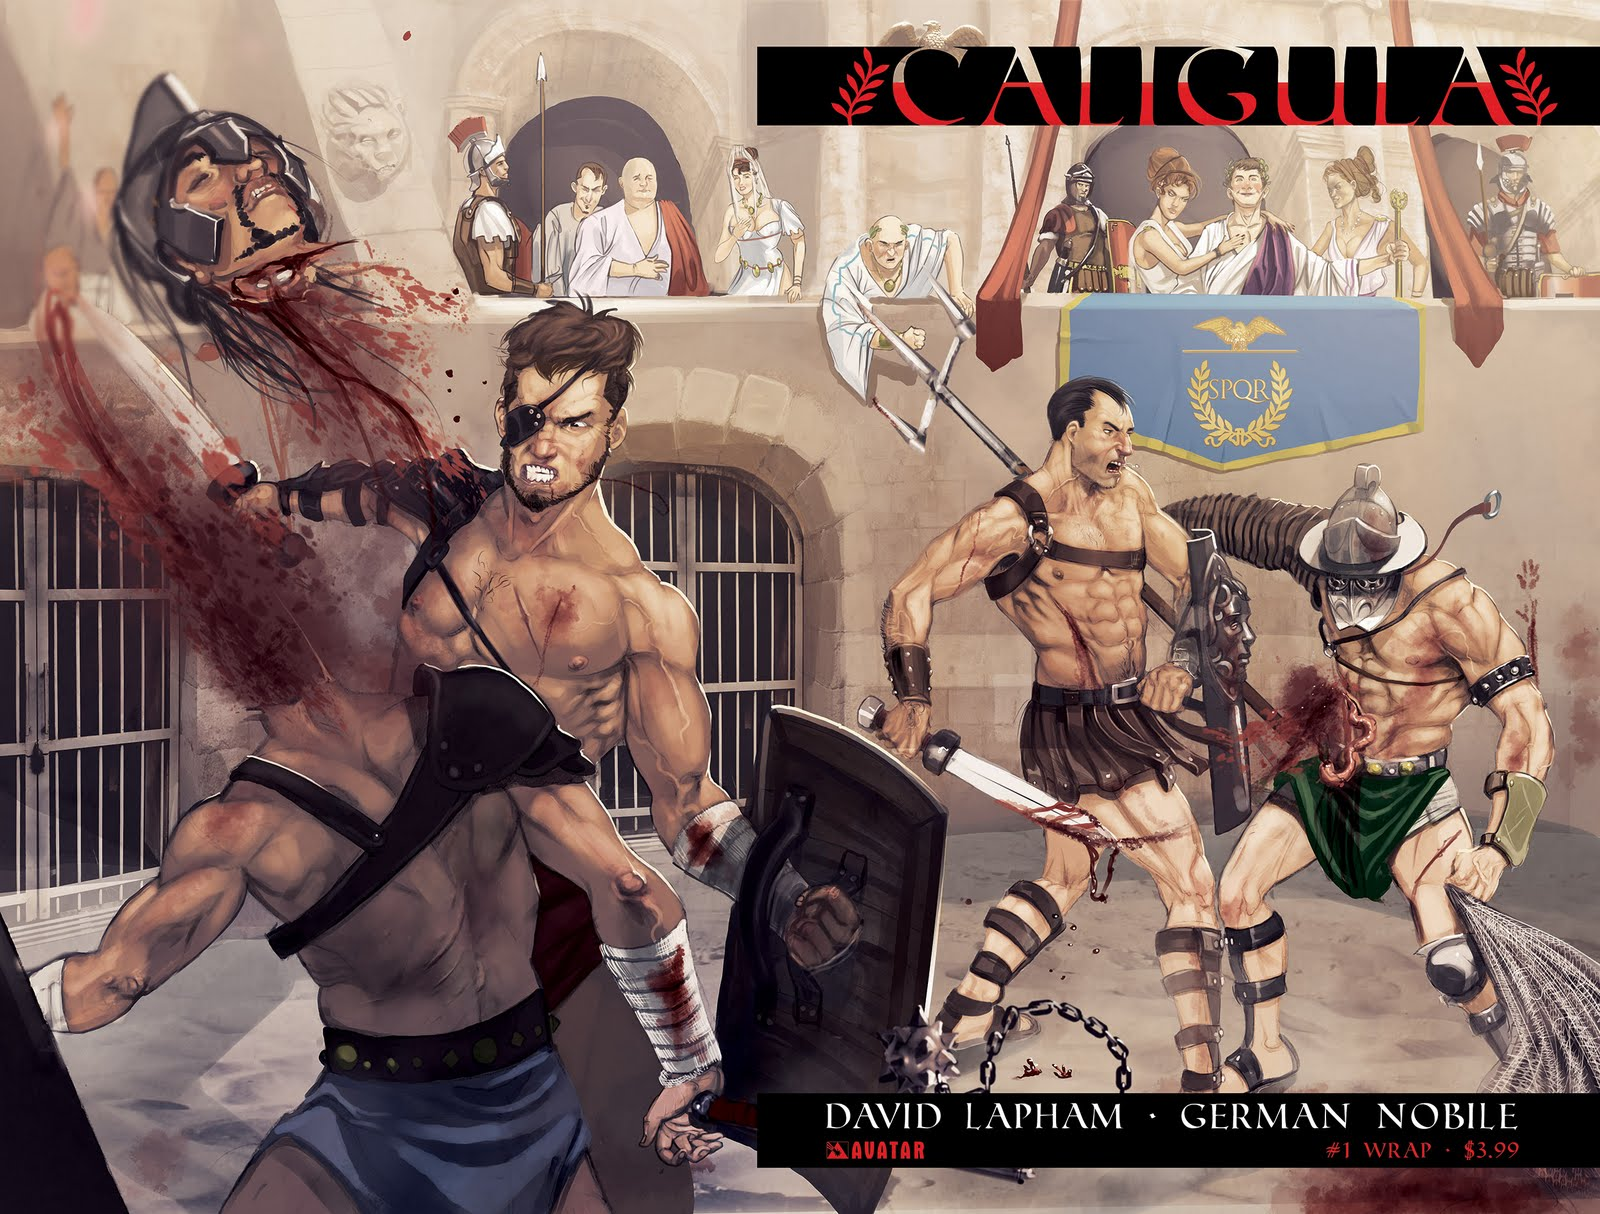 adult movie Caligula